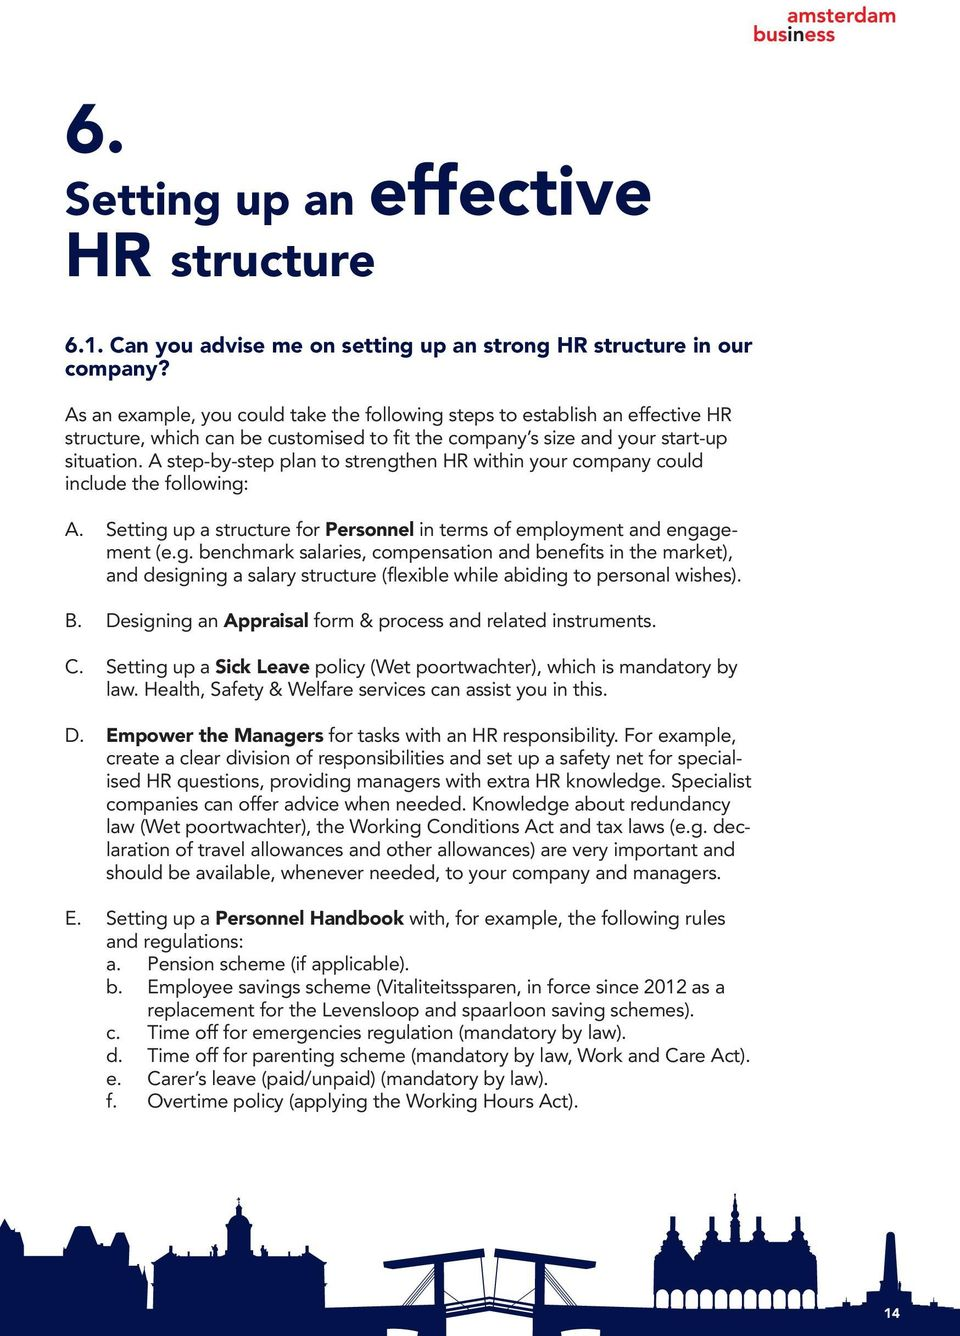 A step-by-step plan to strengthen HR within your company could include the following: A. Setting up a structure for Personnel in terms of employment and engagement (e.g. benchmark salaries, compensation and benefits in the market), and designing a salary structure (flexible while abiding to personal wishes).